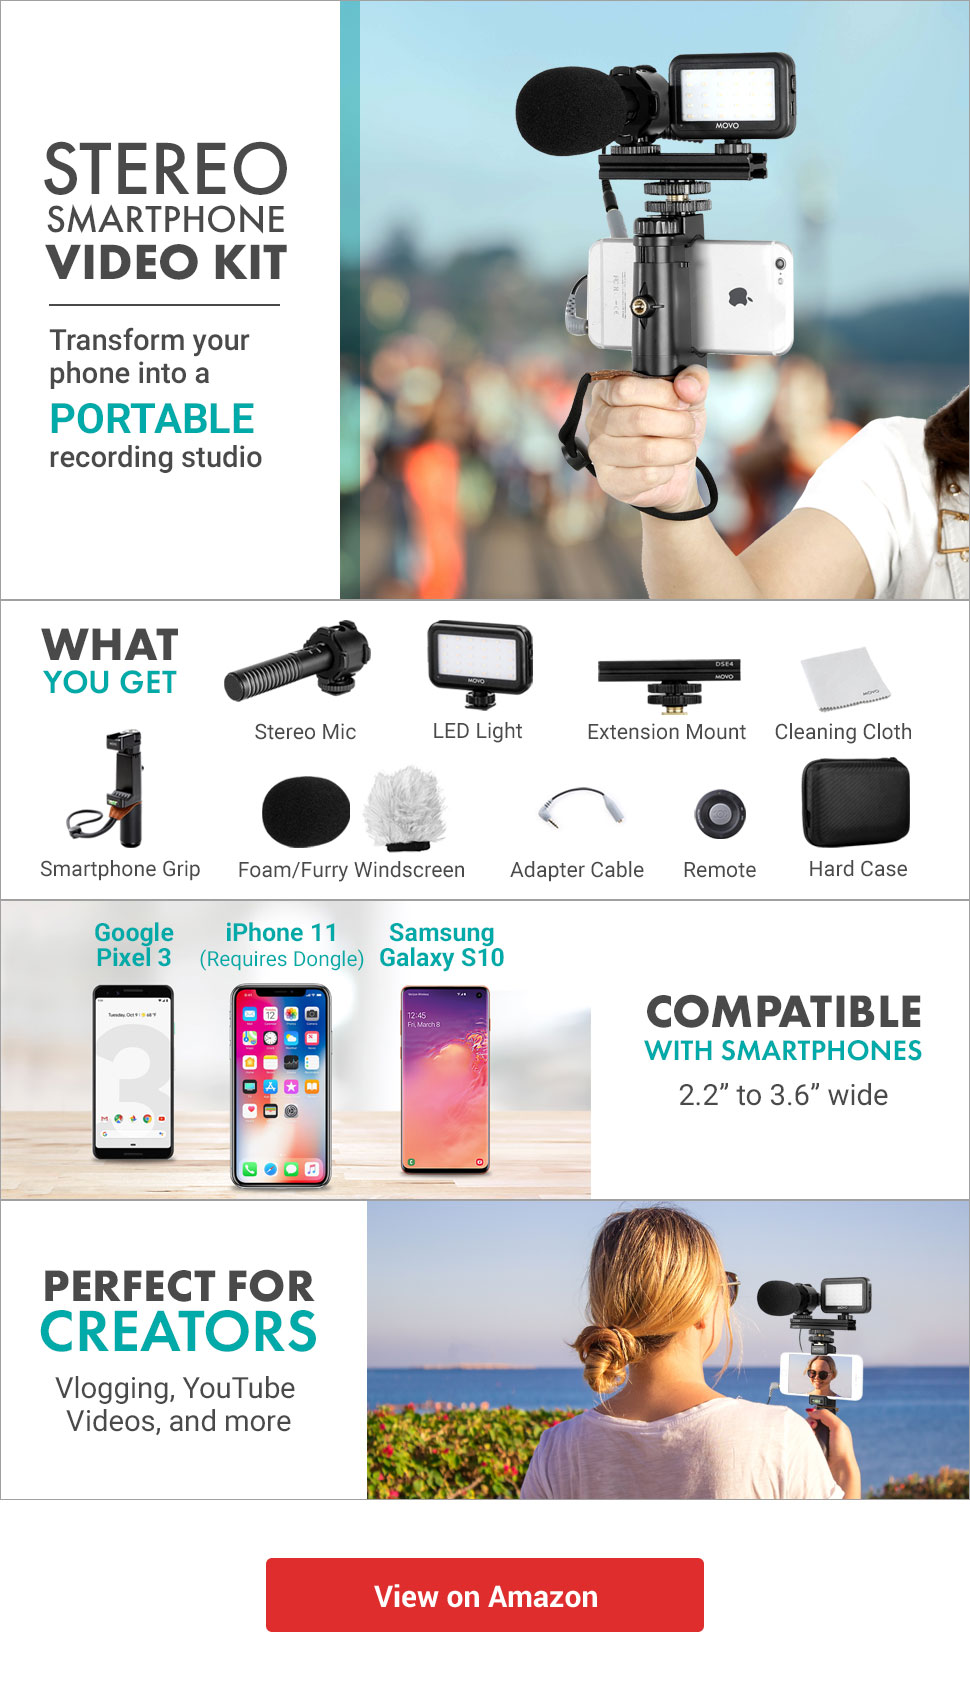 Stereo Smartphone YouTube Video Kit